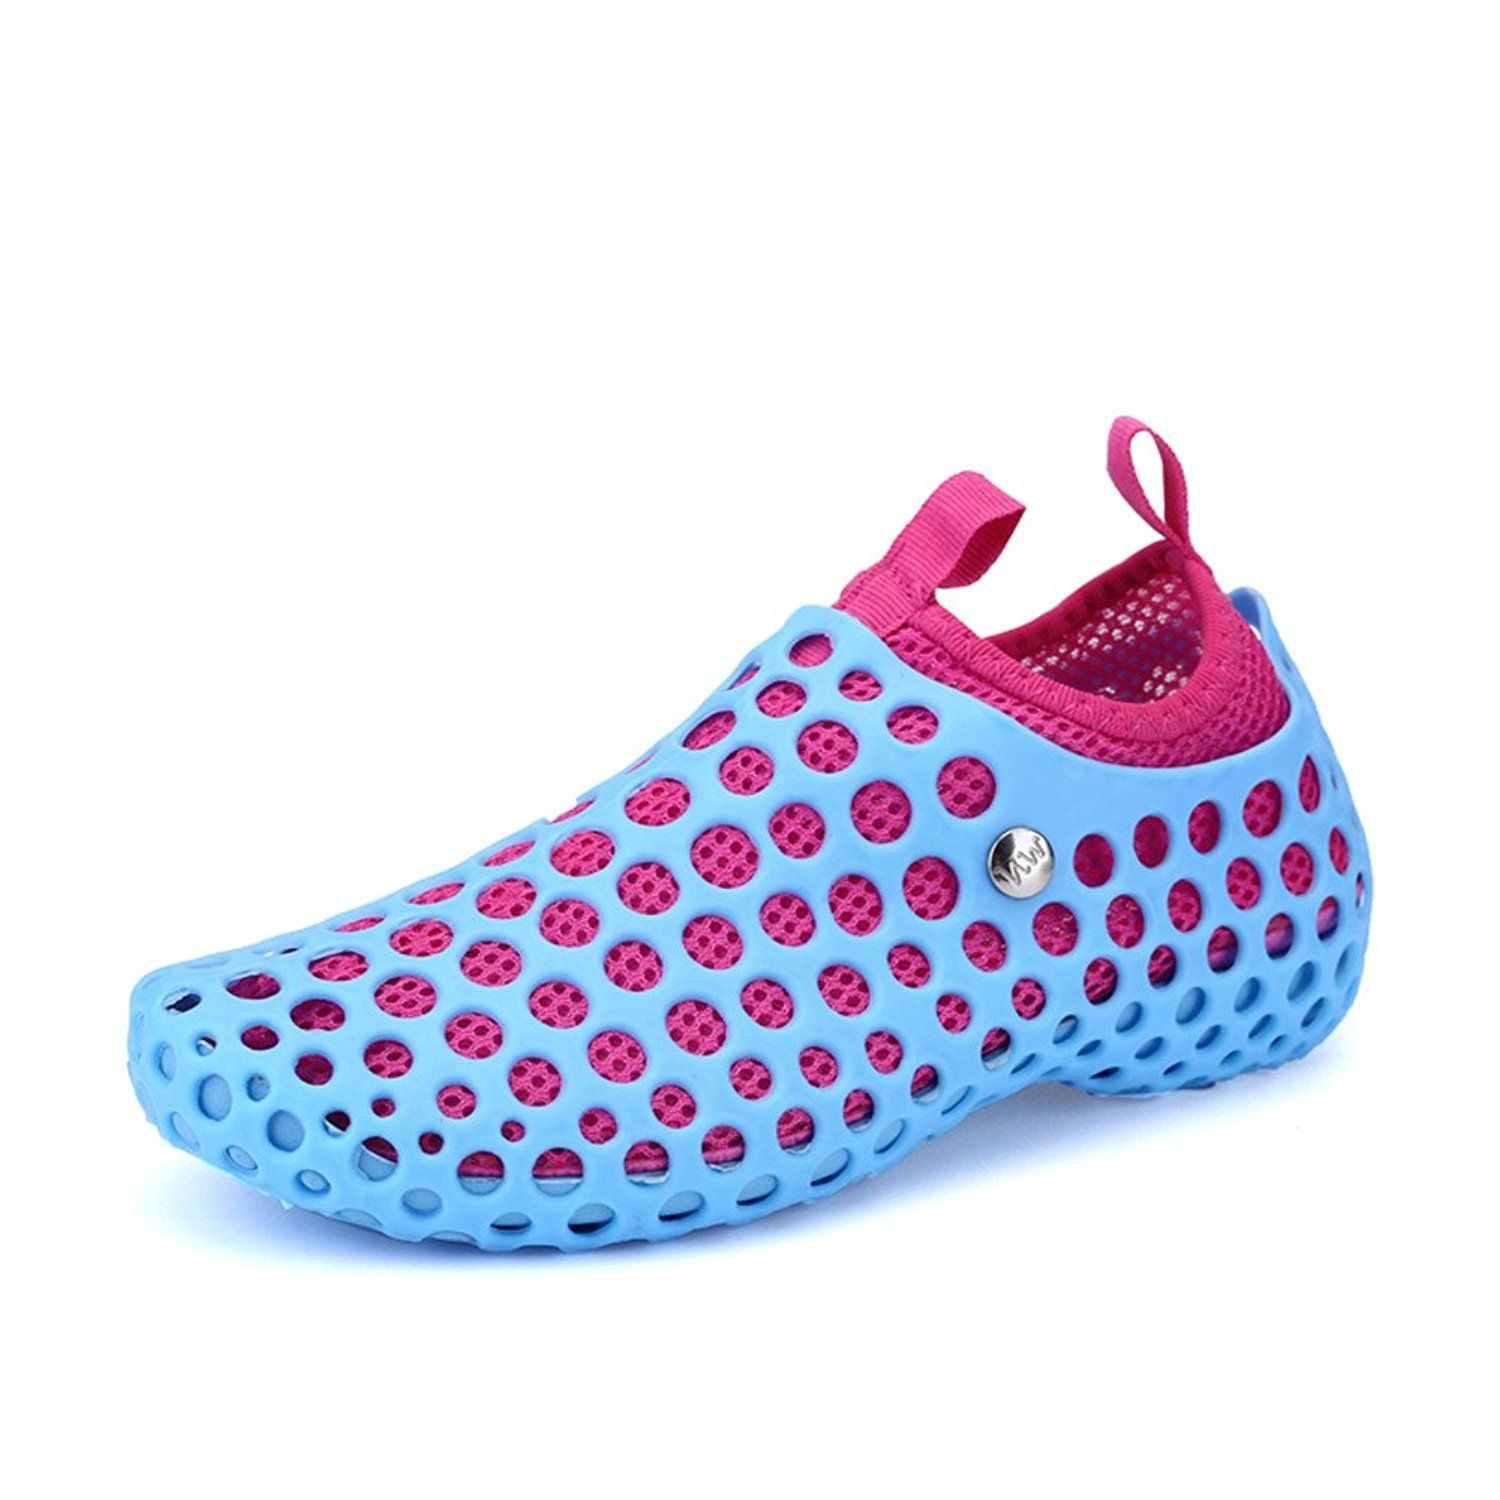 Women's Fashion Mesh Hollow Soft Water Shoes Breathable Sandals